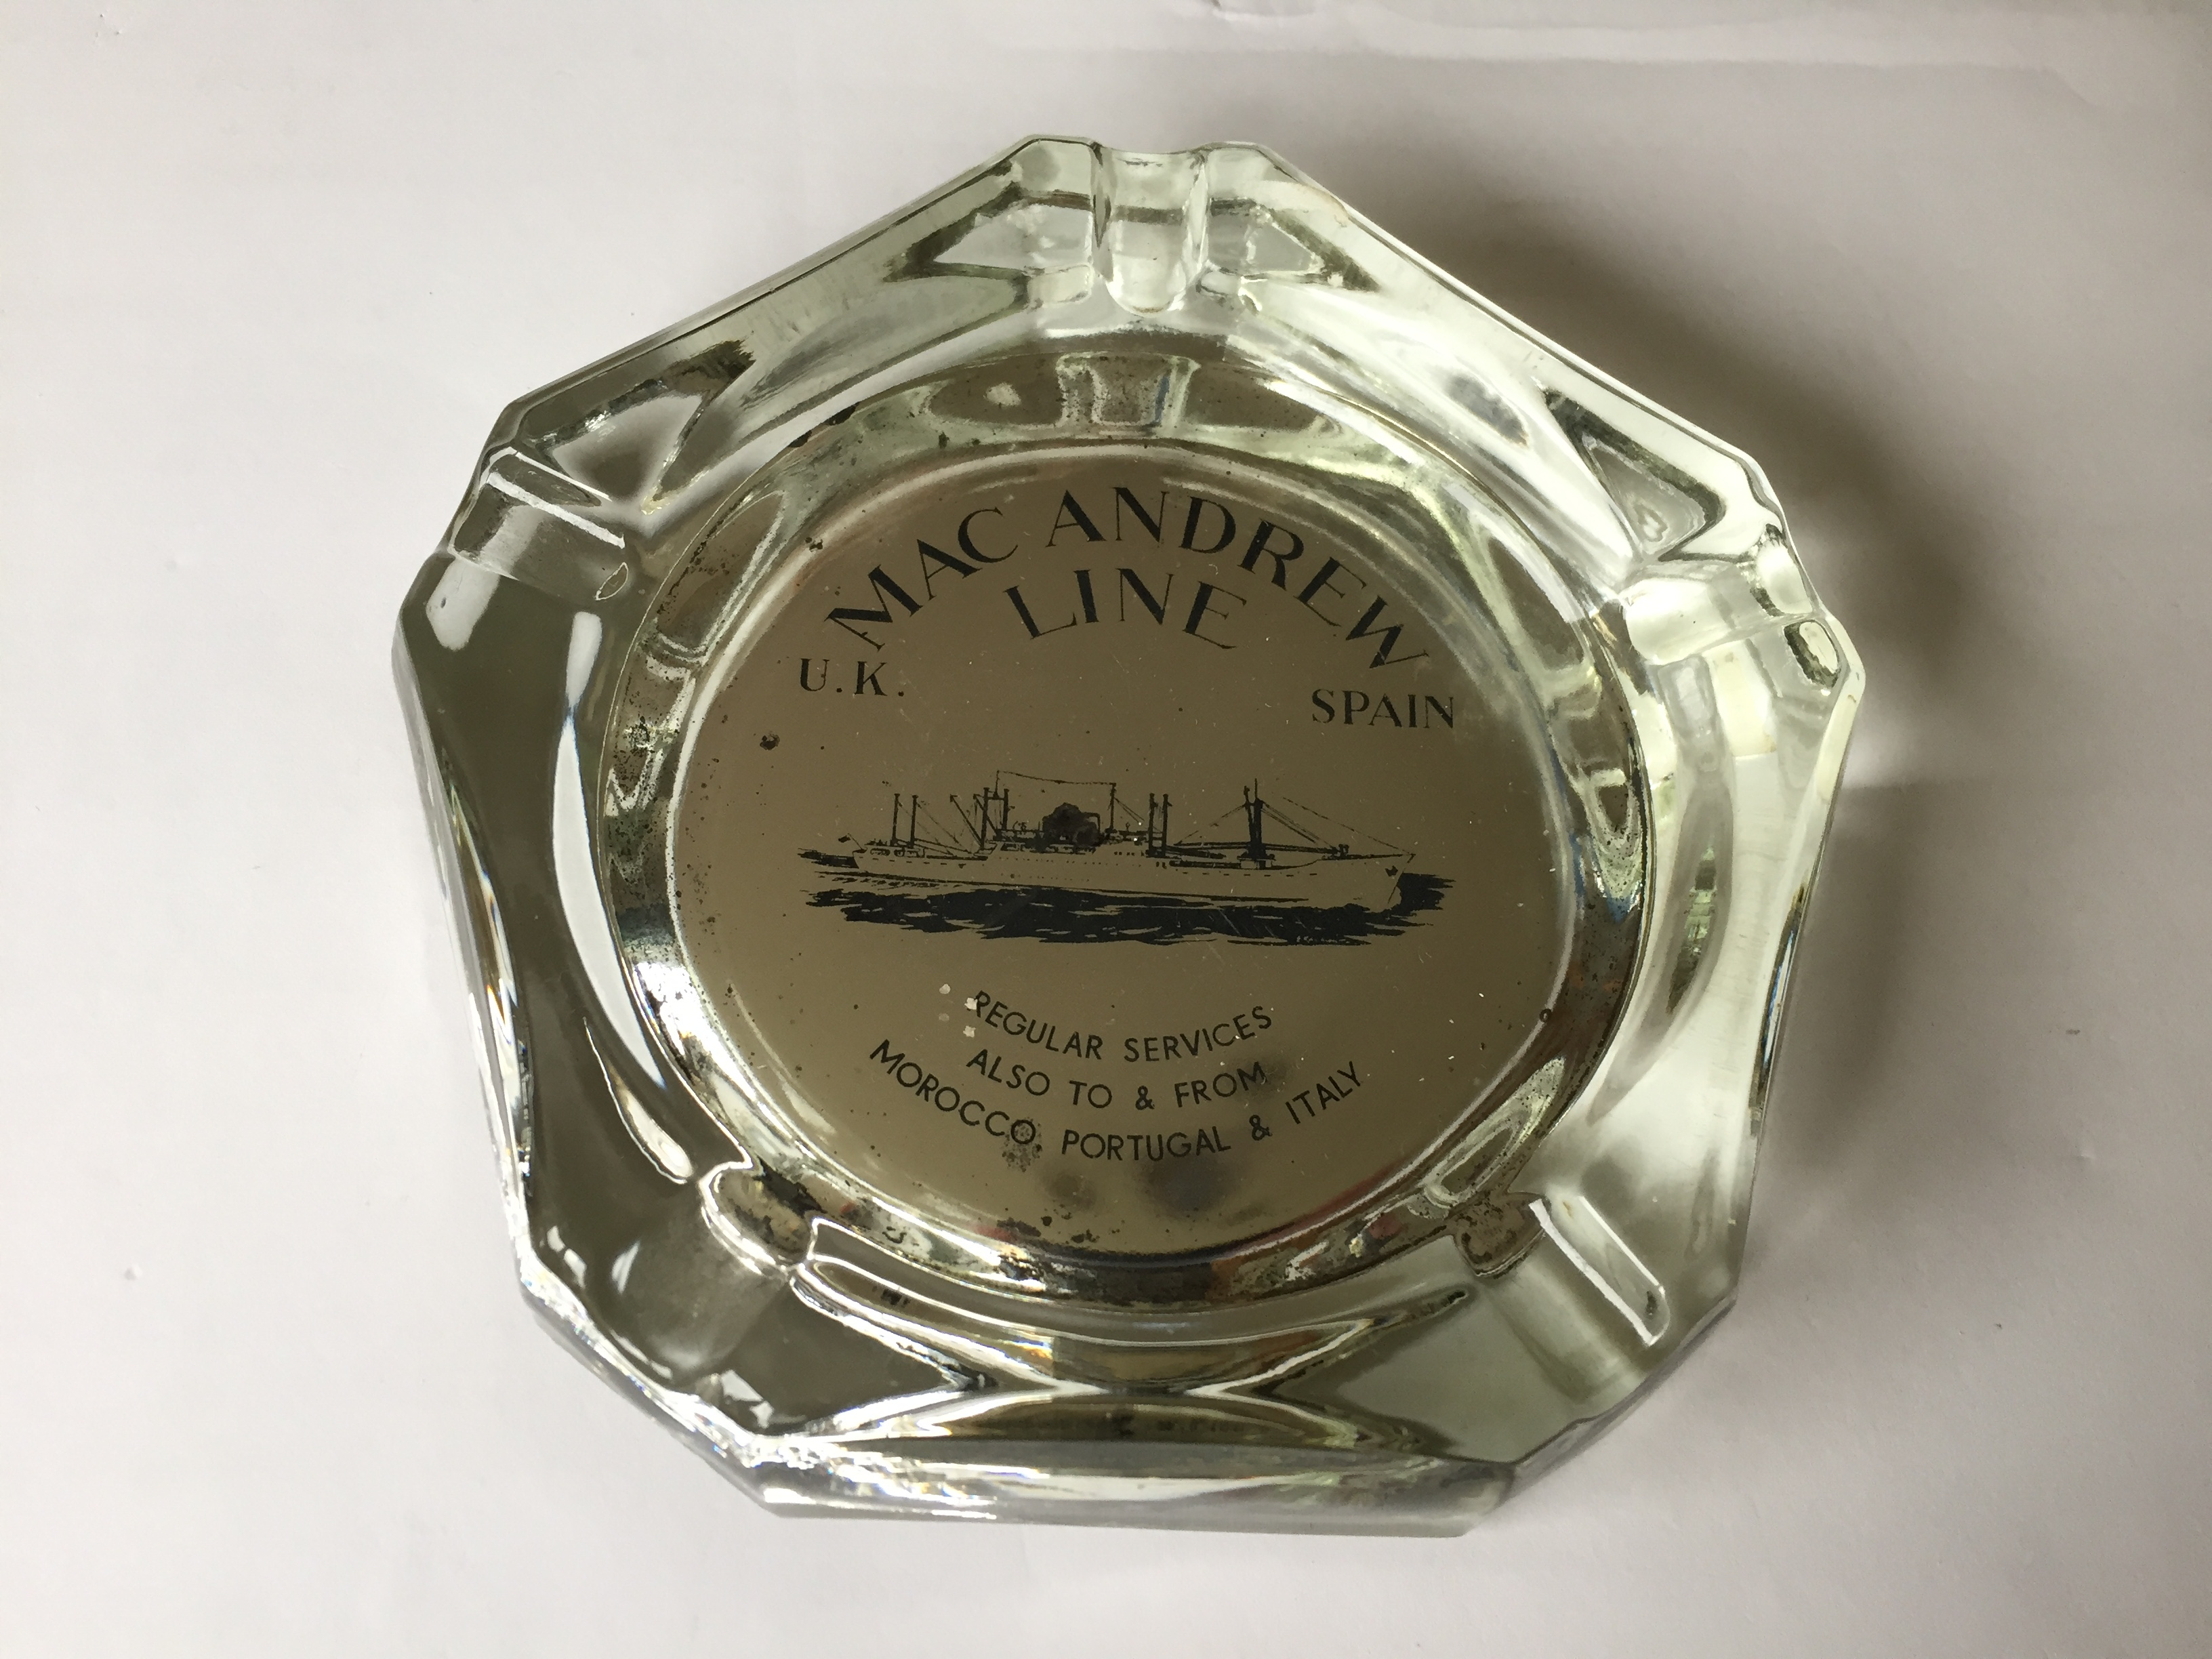 GLASS ASHTRAY FROM THE MACANDREW LINE SHIPPING COMPANY